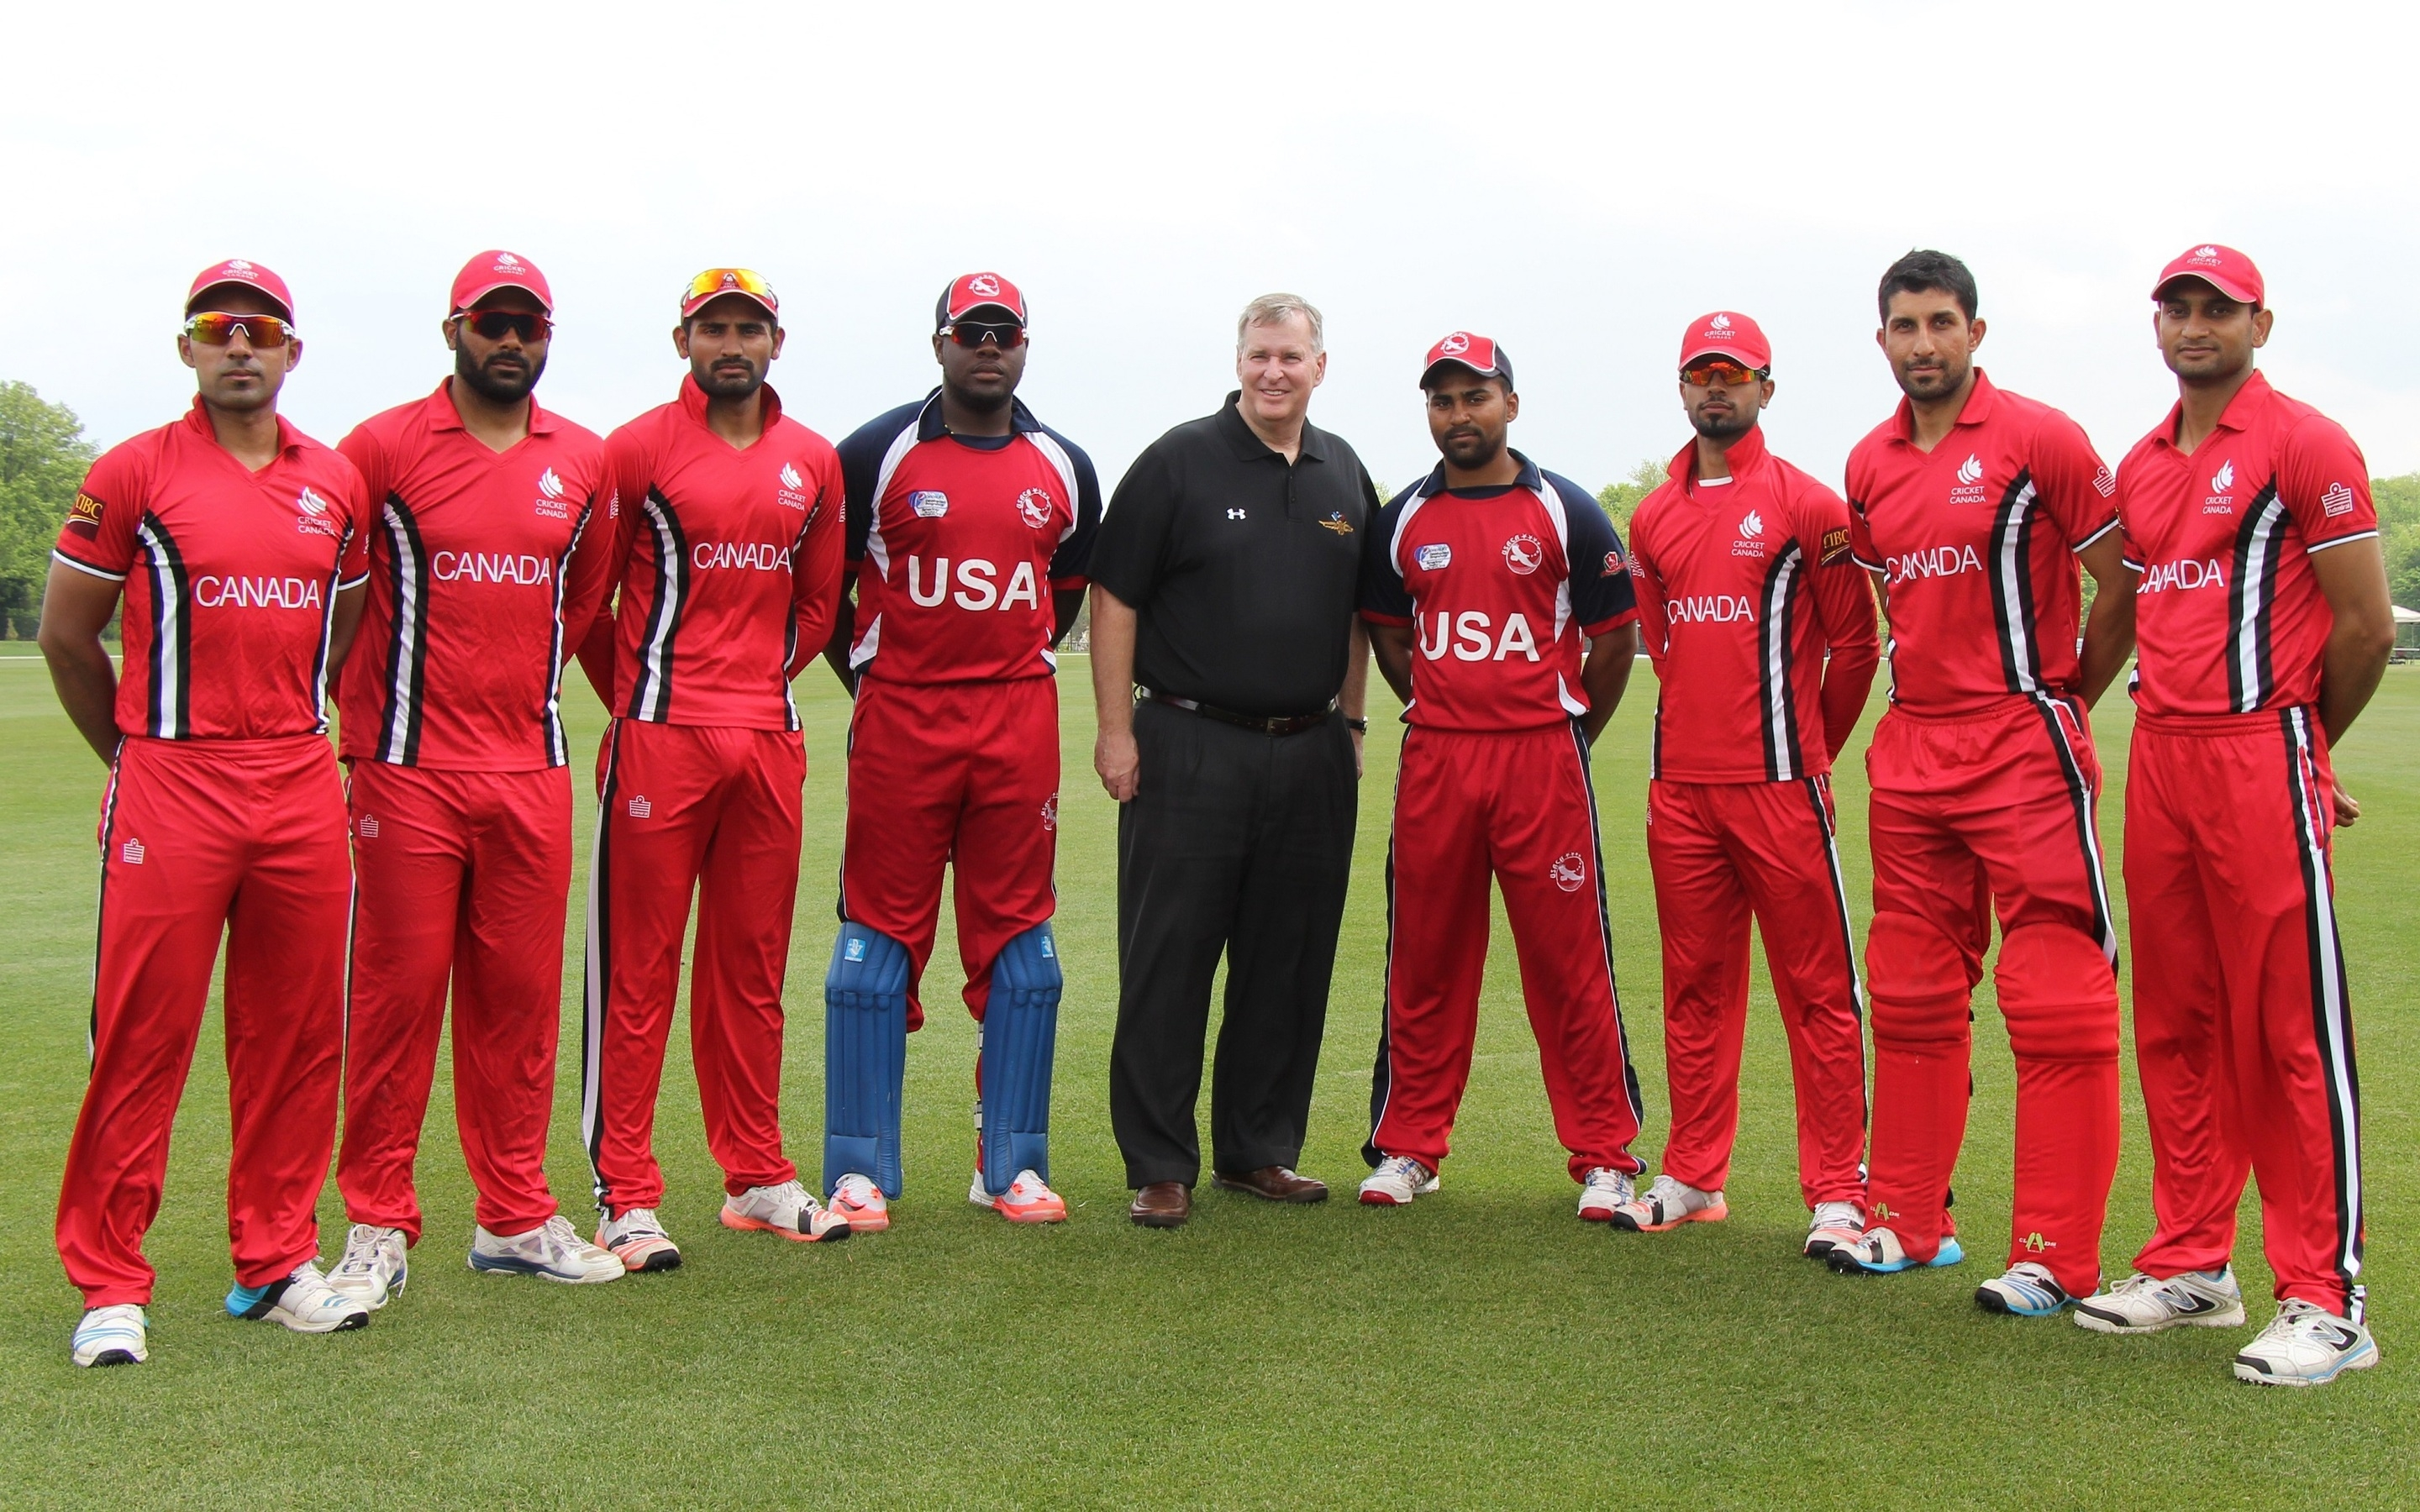 Cricket Canada for 2880 x 1800 Retina Display resolution